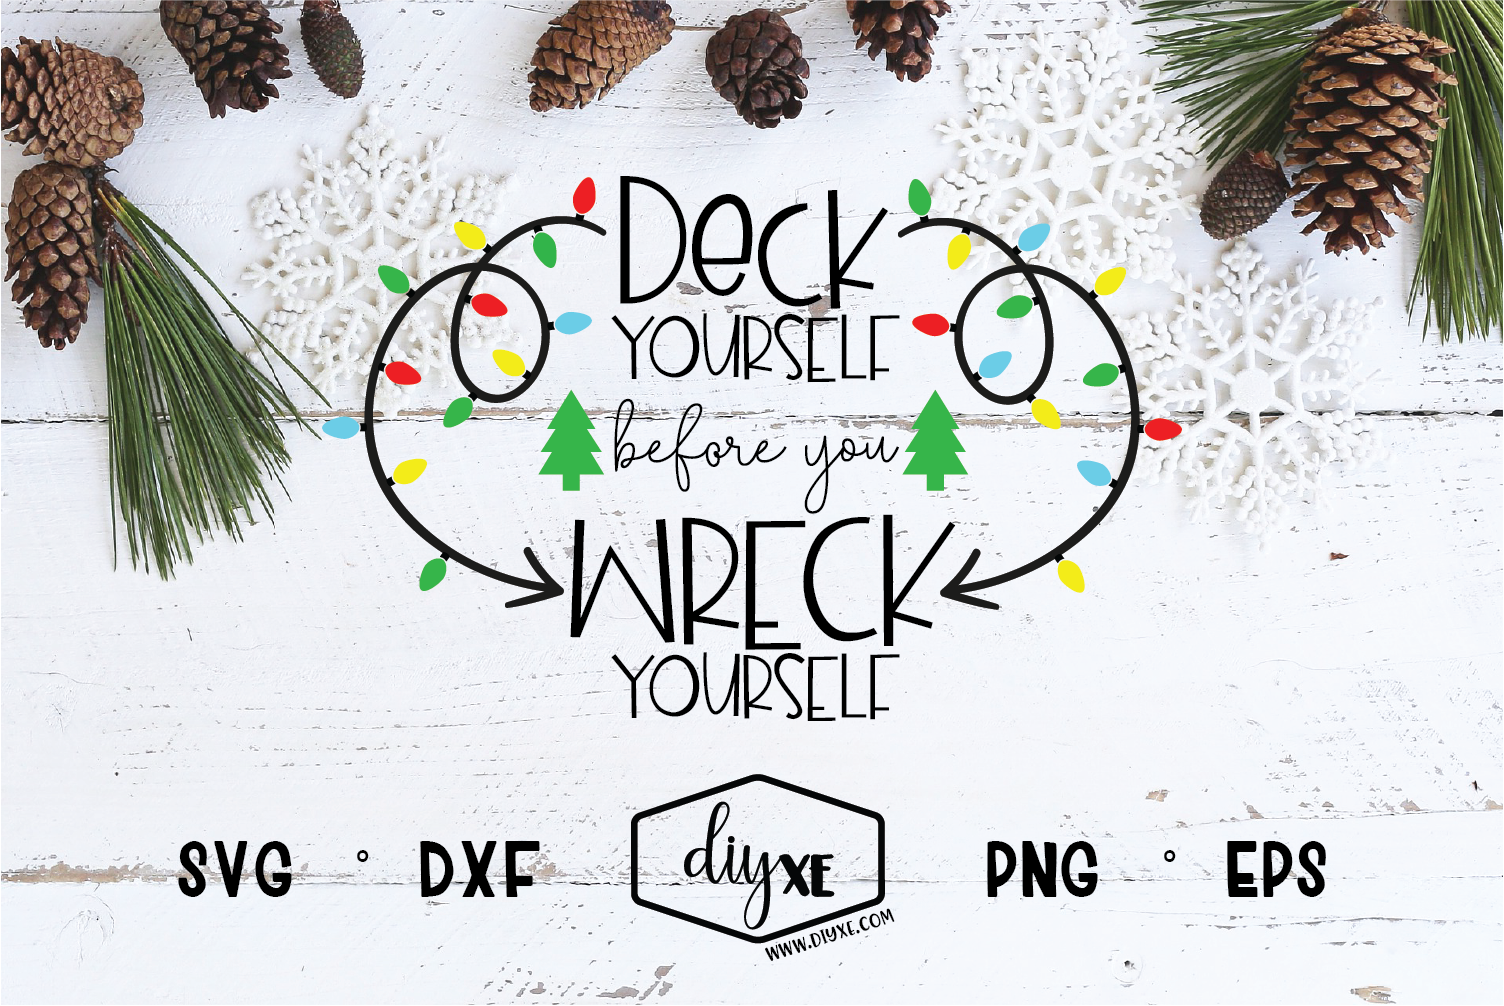 Download Free Deck Yourself Before You Wreck Yourself Graphic By Sheryl Holst for Cricut Explore, Silhouette and other cutting machines.